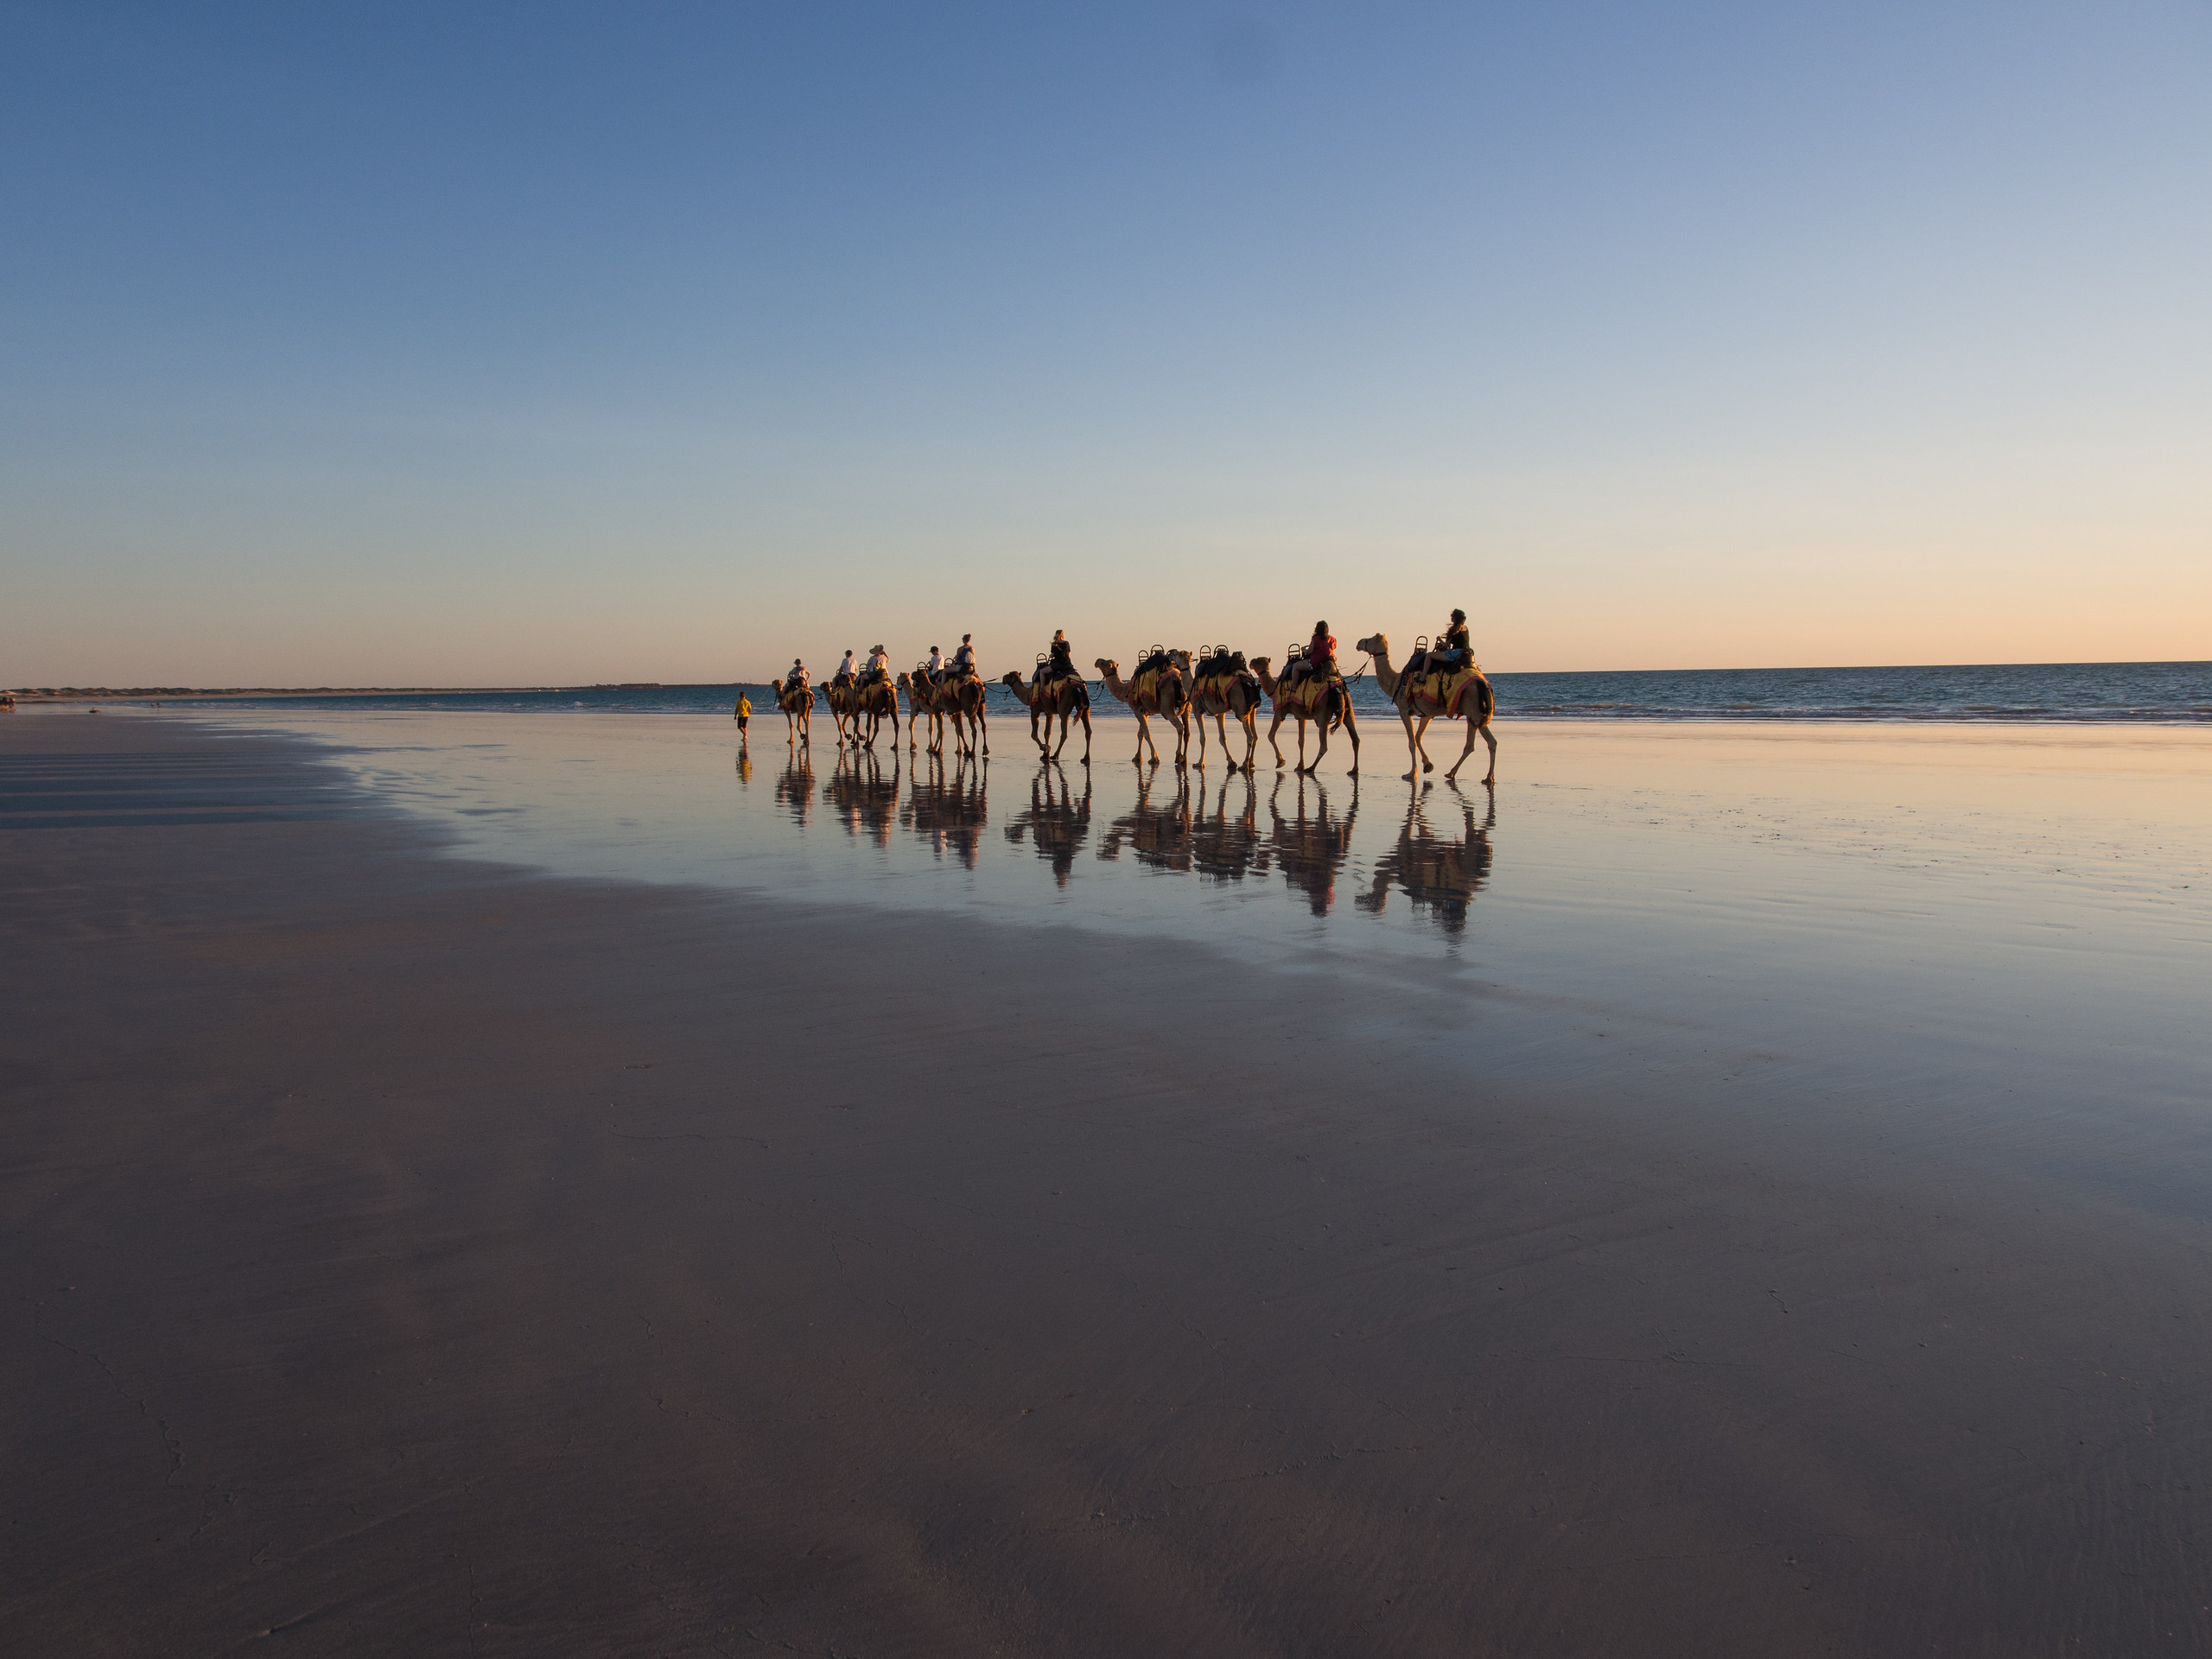 Camel Ride on Cable Beach in Broome Western Australia at dusk.